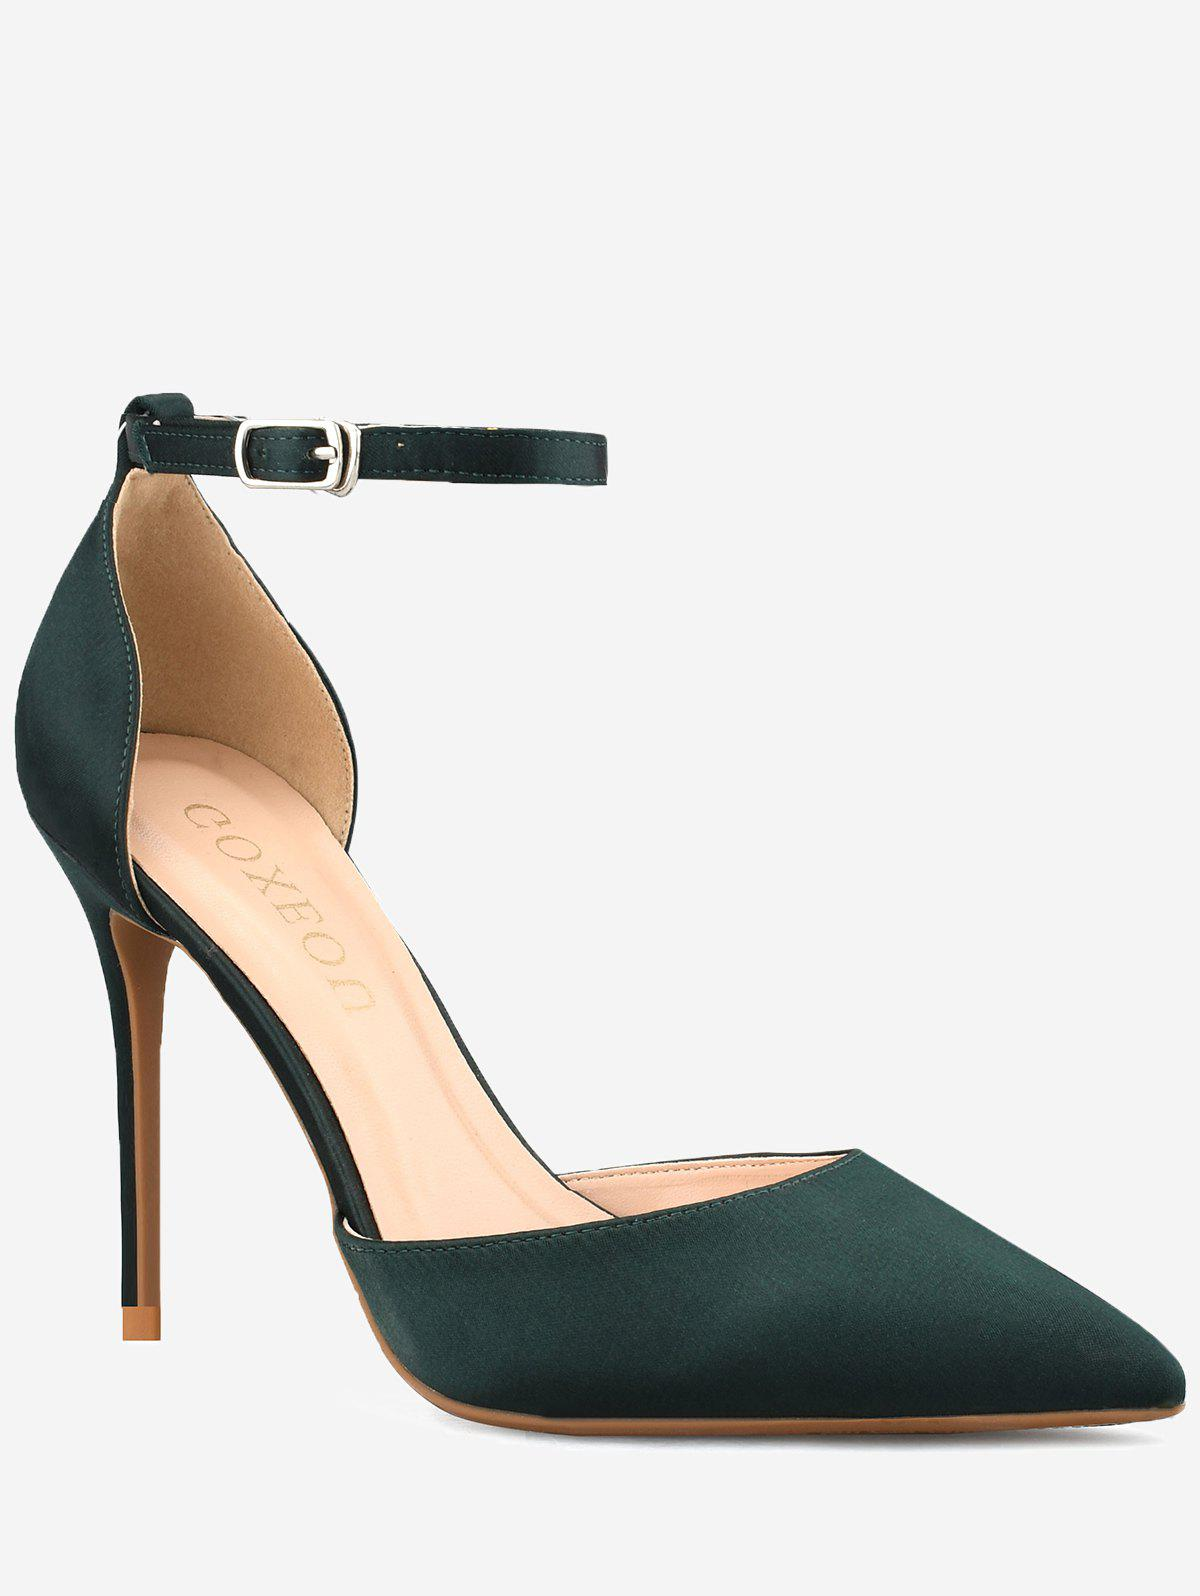 Latest GOXEOU Stiletto Heel Pointed Toe Leisure Pumps